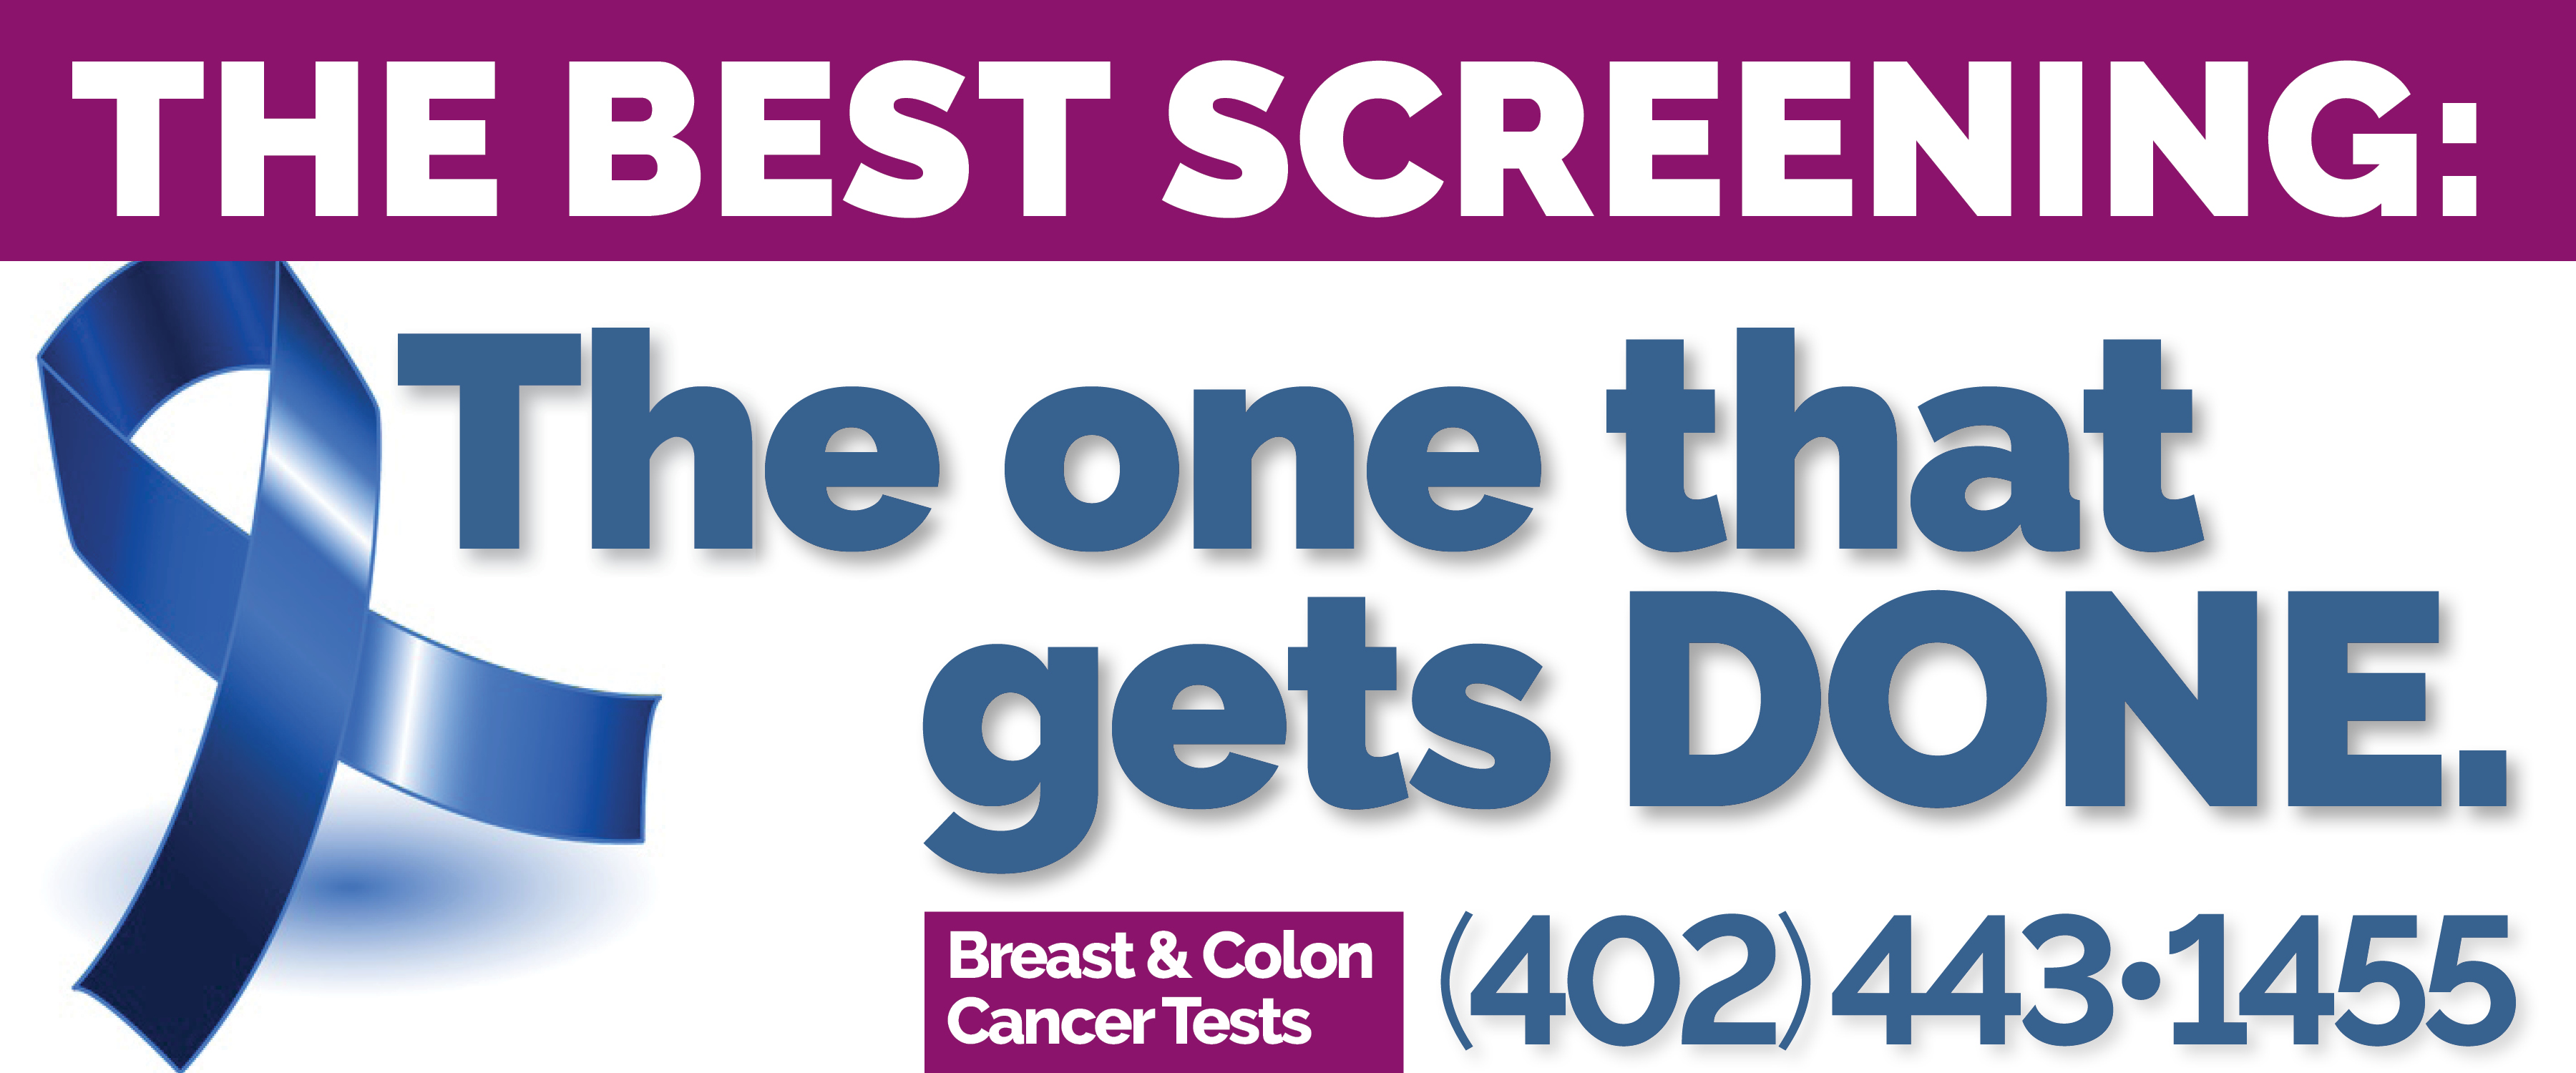 Should Colon Cancer Screening Start at 45, not 50?